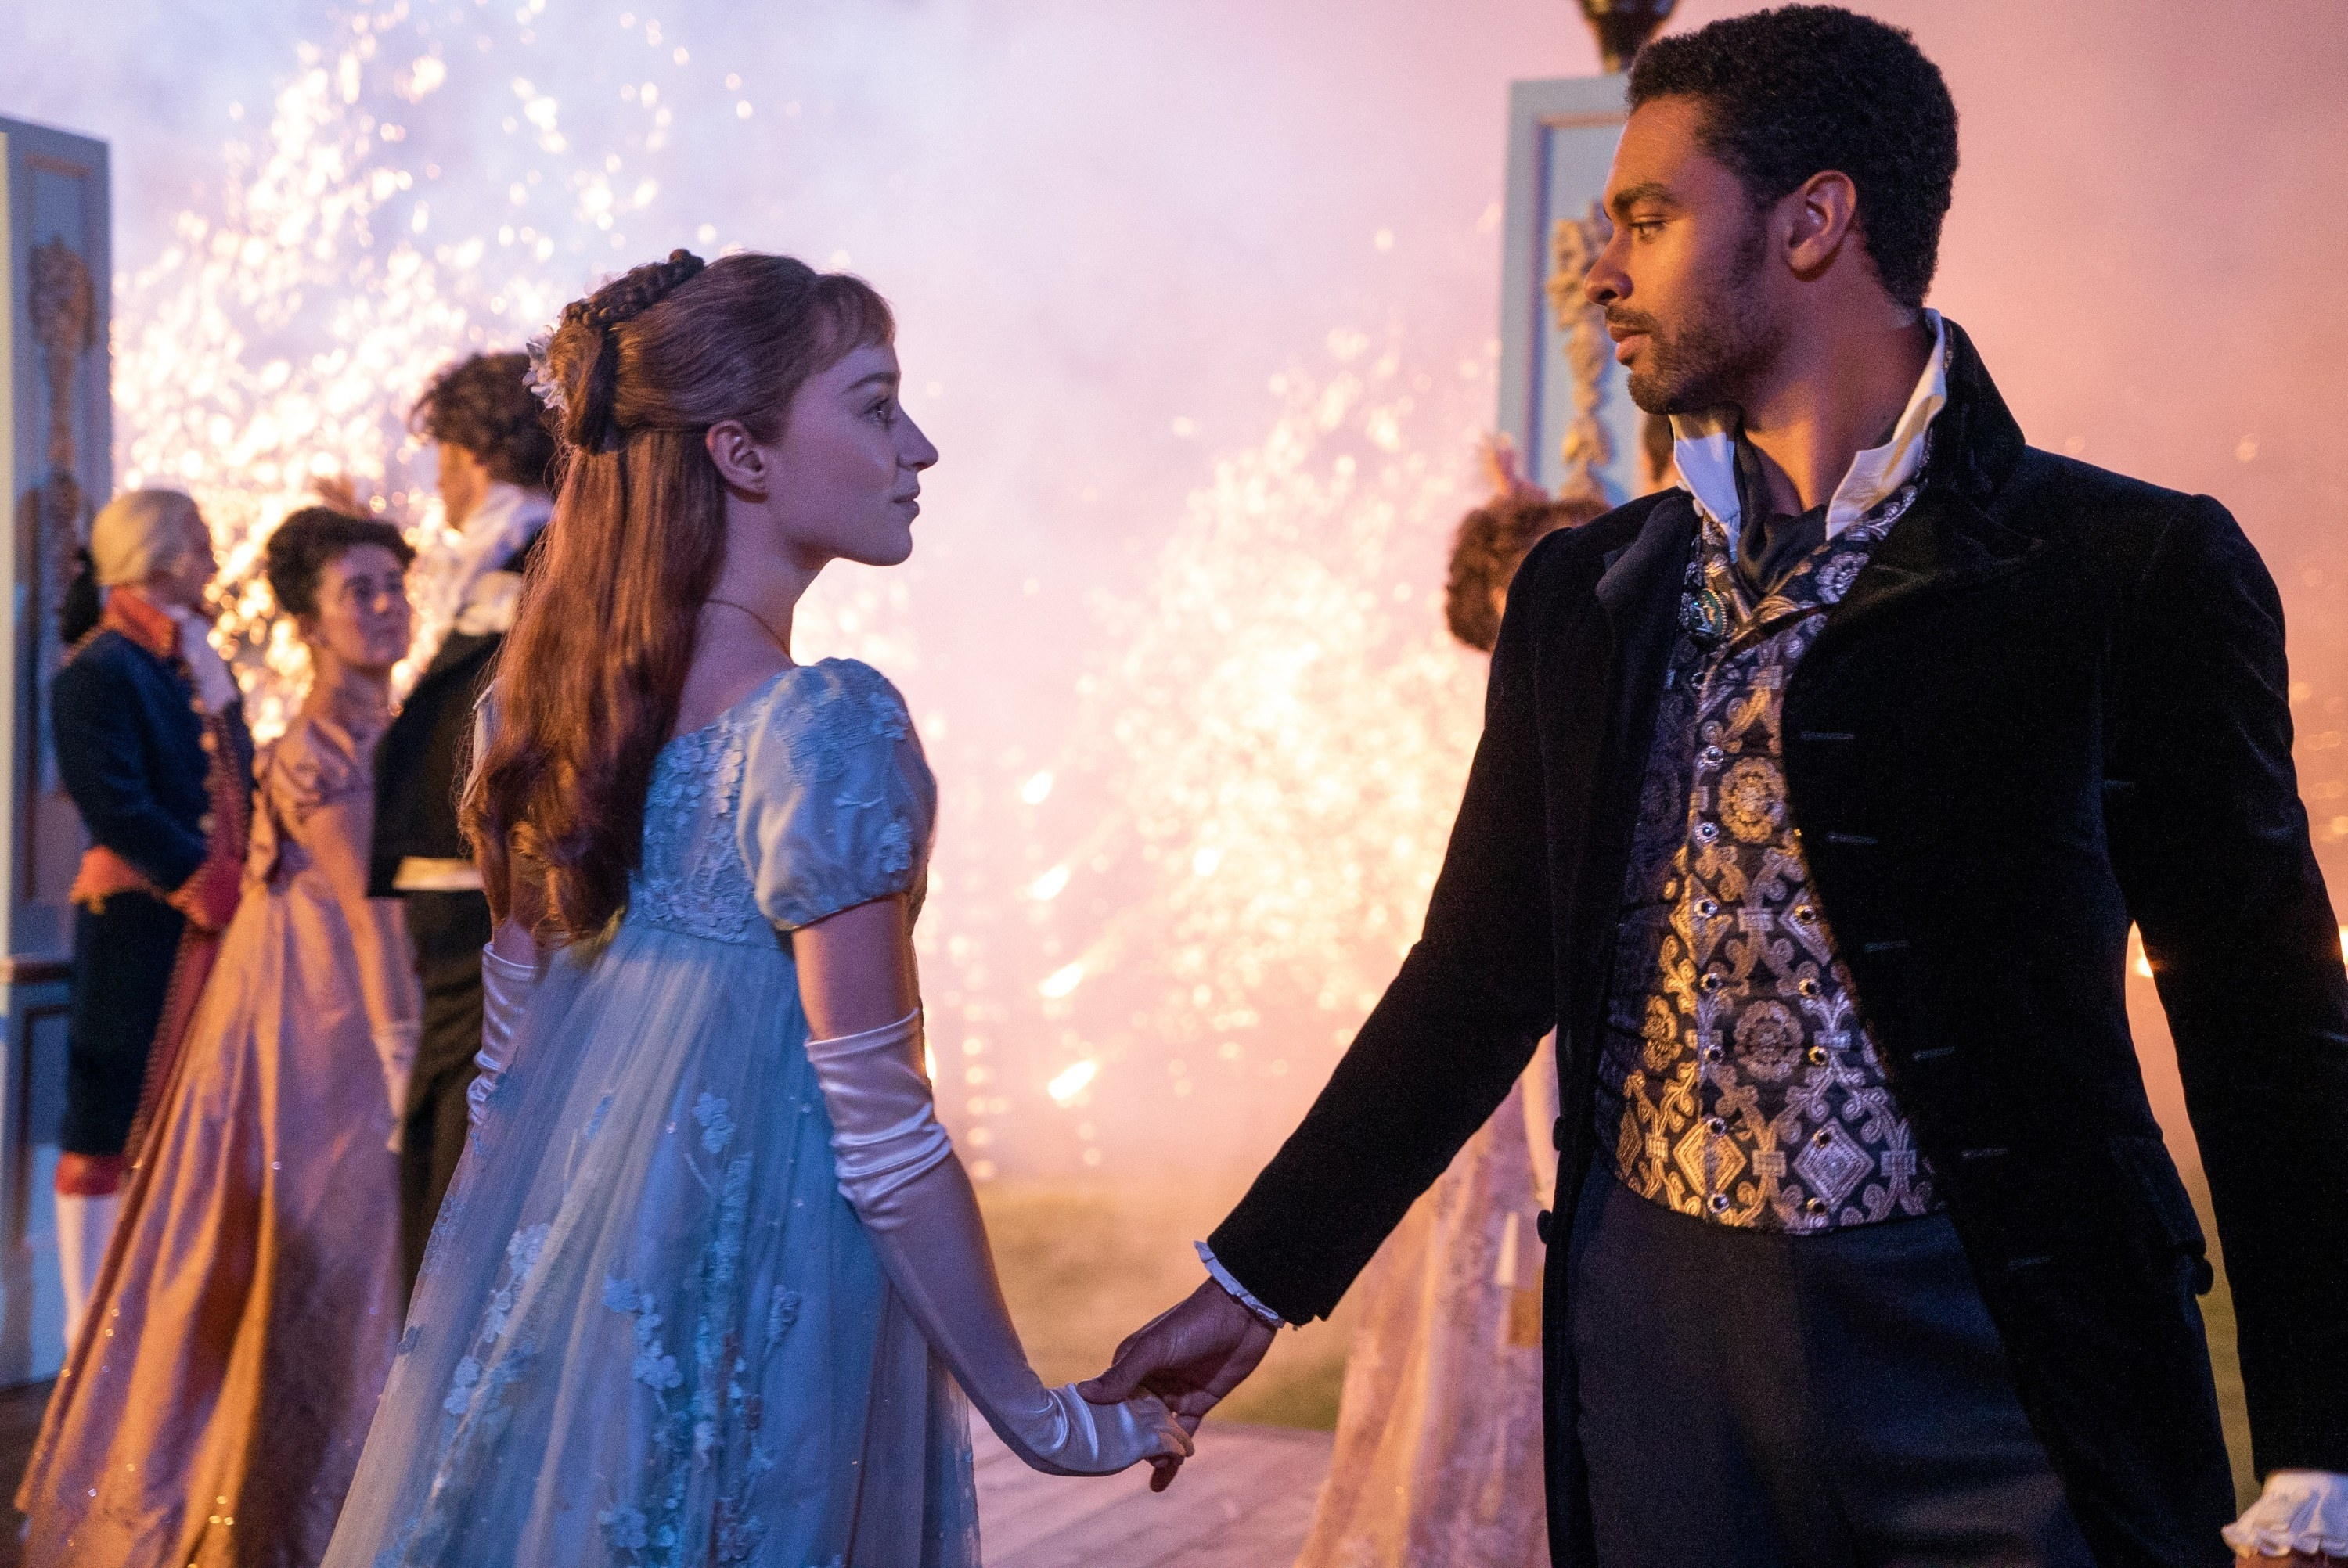 Phoebe and Regé-Jean holding hands at a ball in a scene from Bridgerton